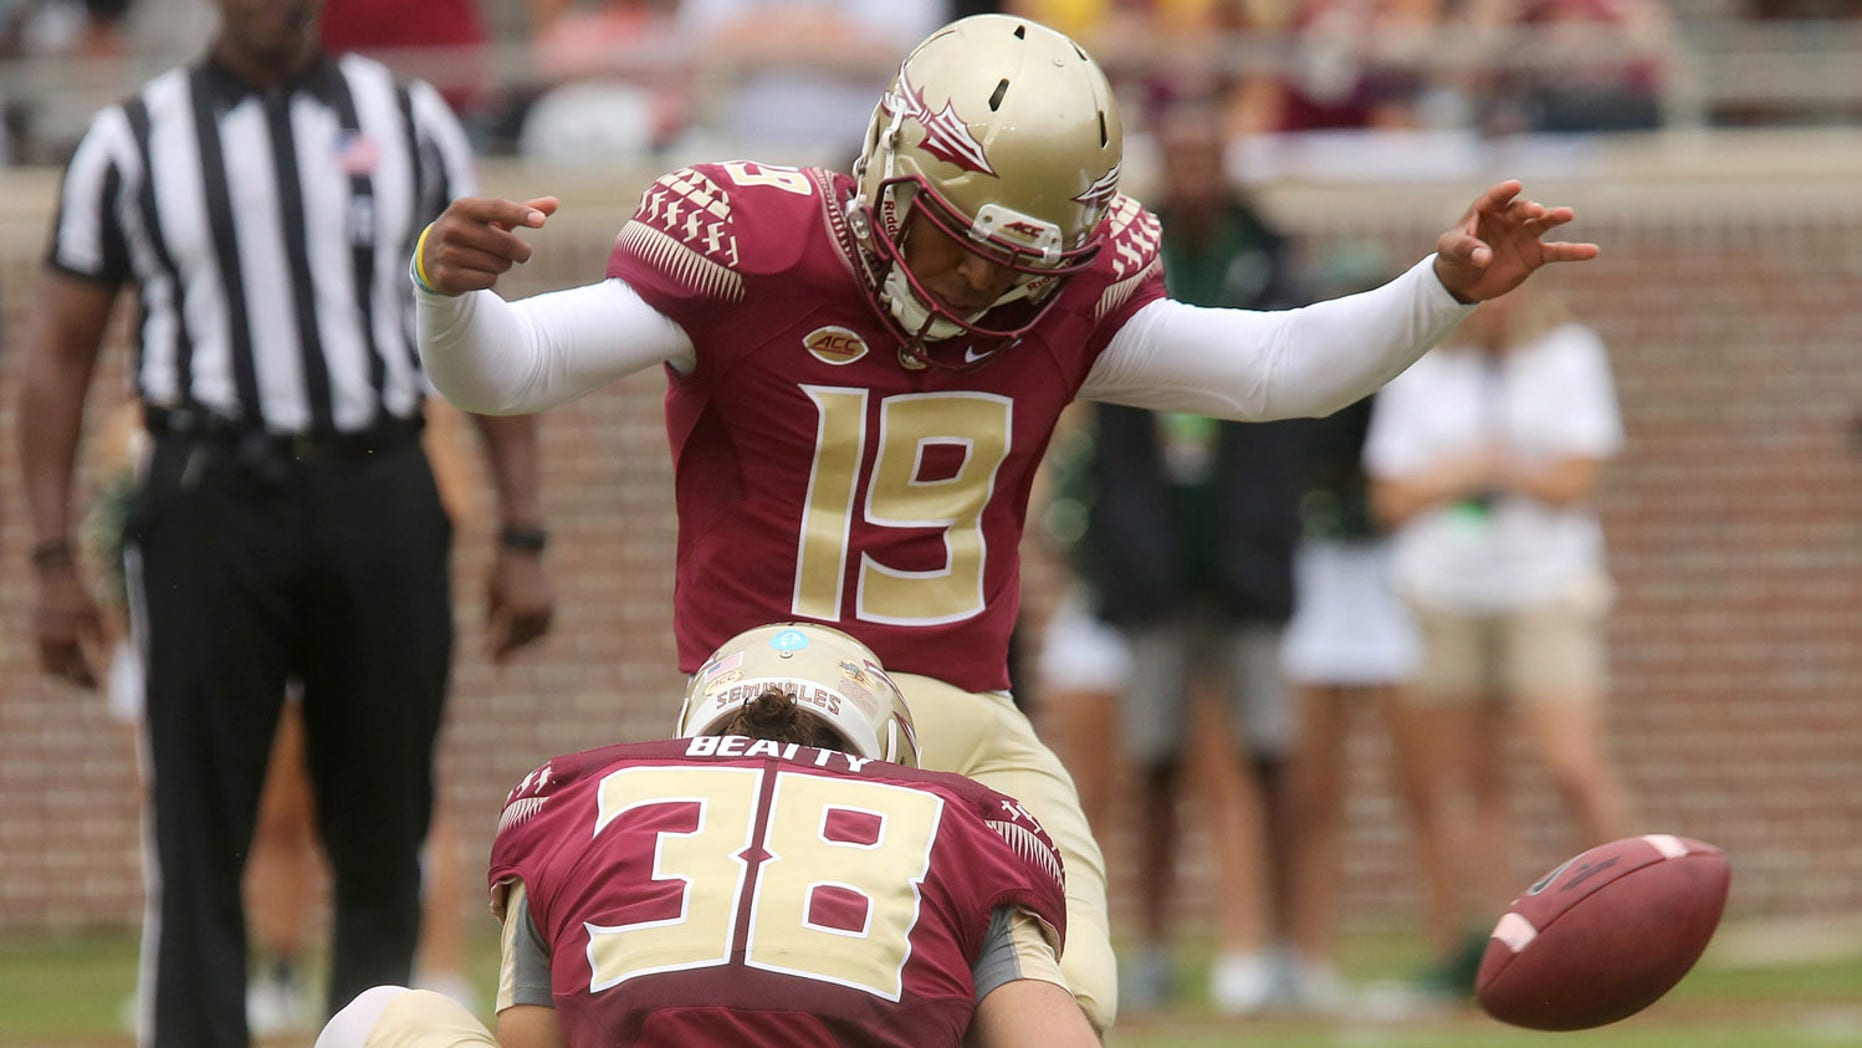 FILE - In this Sept. 12, 2015, file photo, Florida State's Roberto Aguayo kicks an extra point from the hold of Cason Beatty during an NCAA college football game against South Florida in Tallahassee, Fla. Aguayo, who is the most accurate kicker in NCAA history, could be the first kicker in 10 years to be selected in the first three rounds of the NFL Draft.  (AP Photo/Steve Cannon, File)